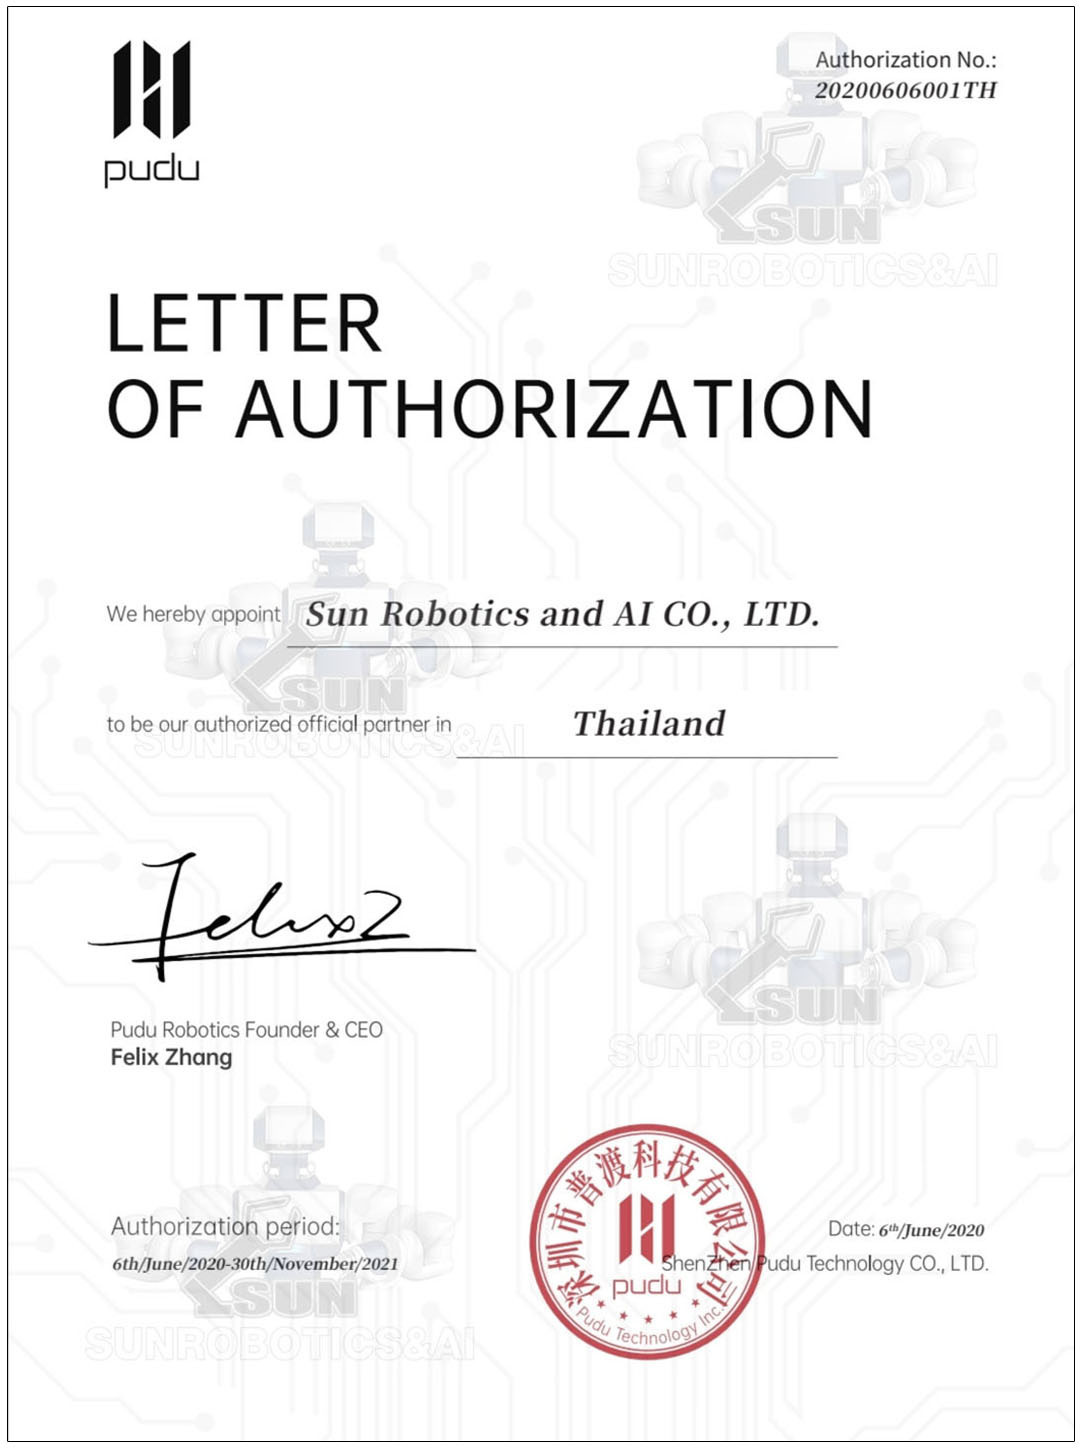 Letter of Authorization-Sun Robotics and AI CO., LTD